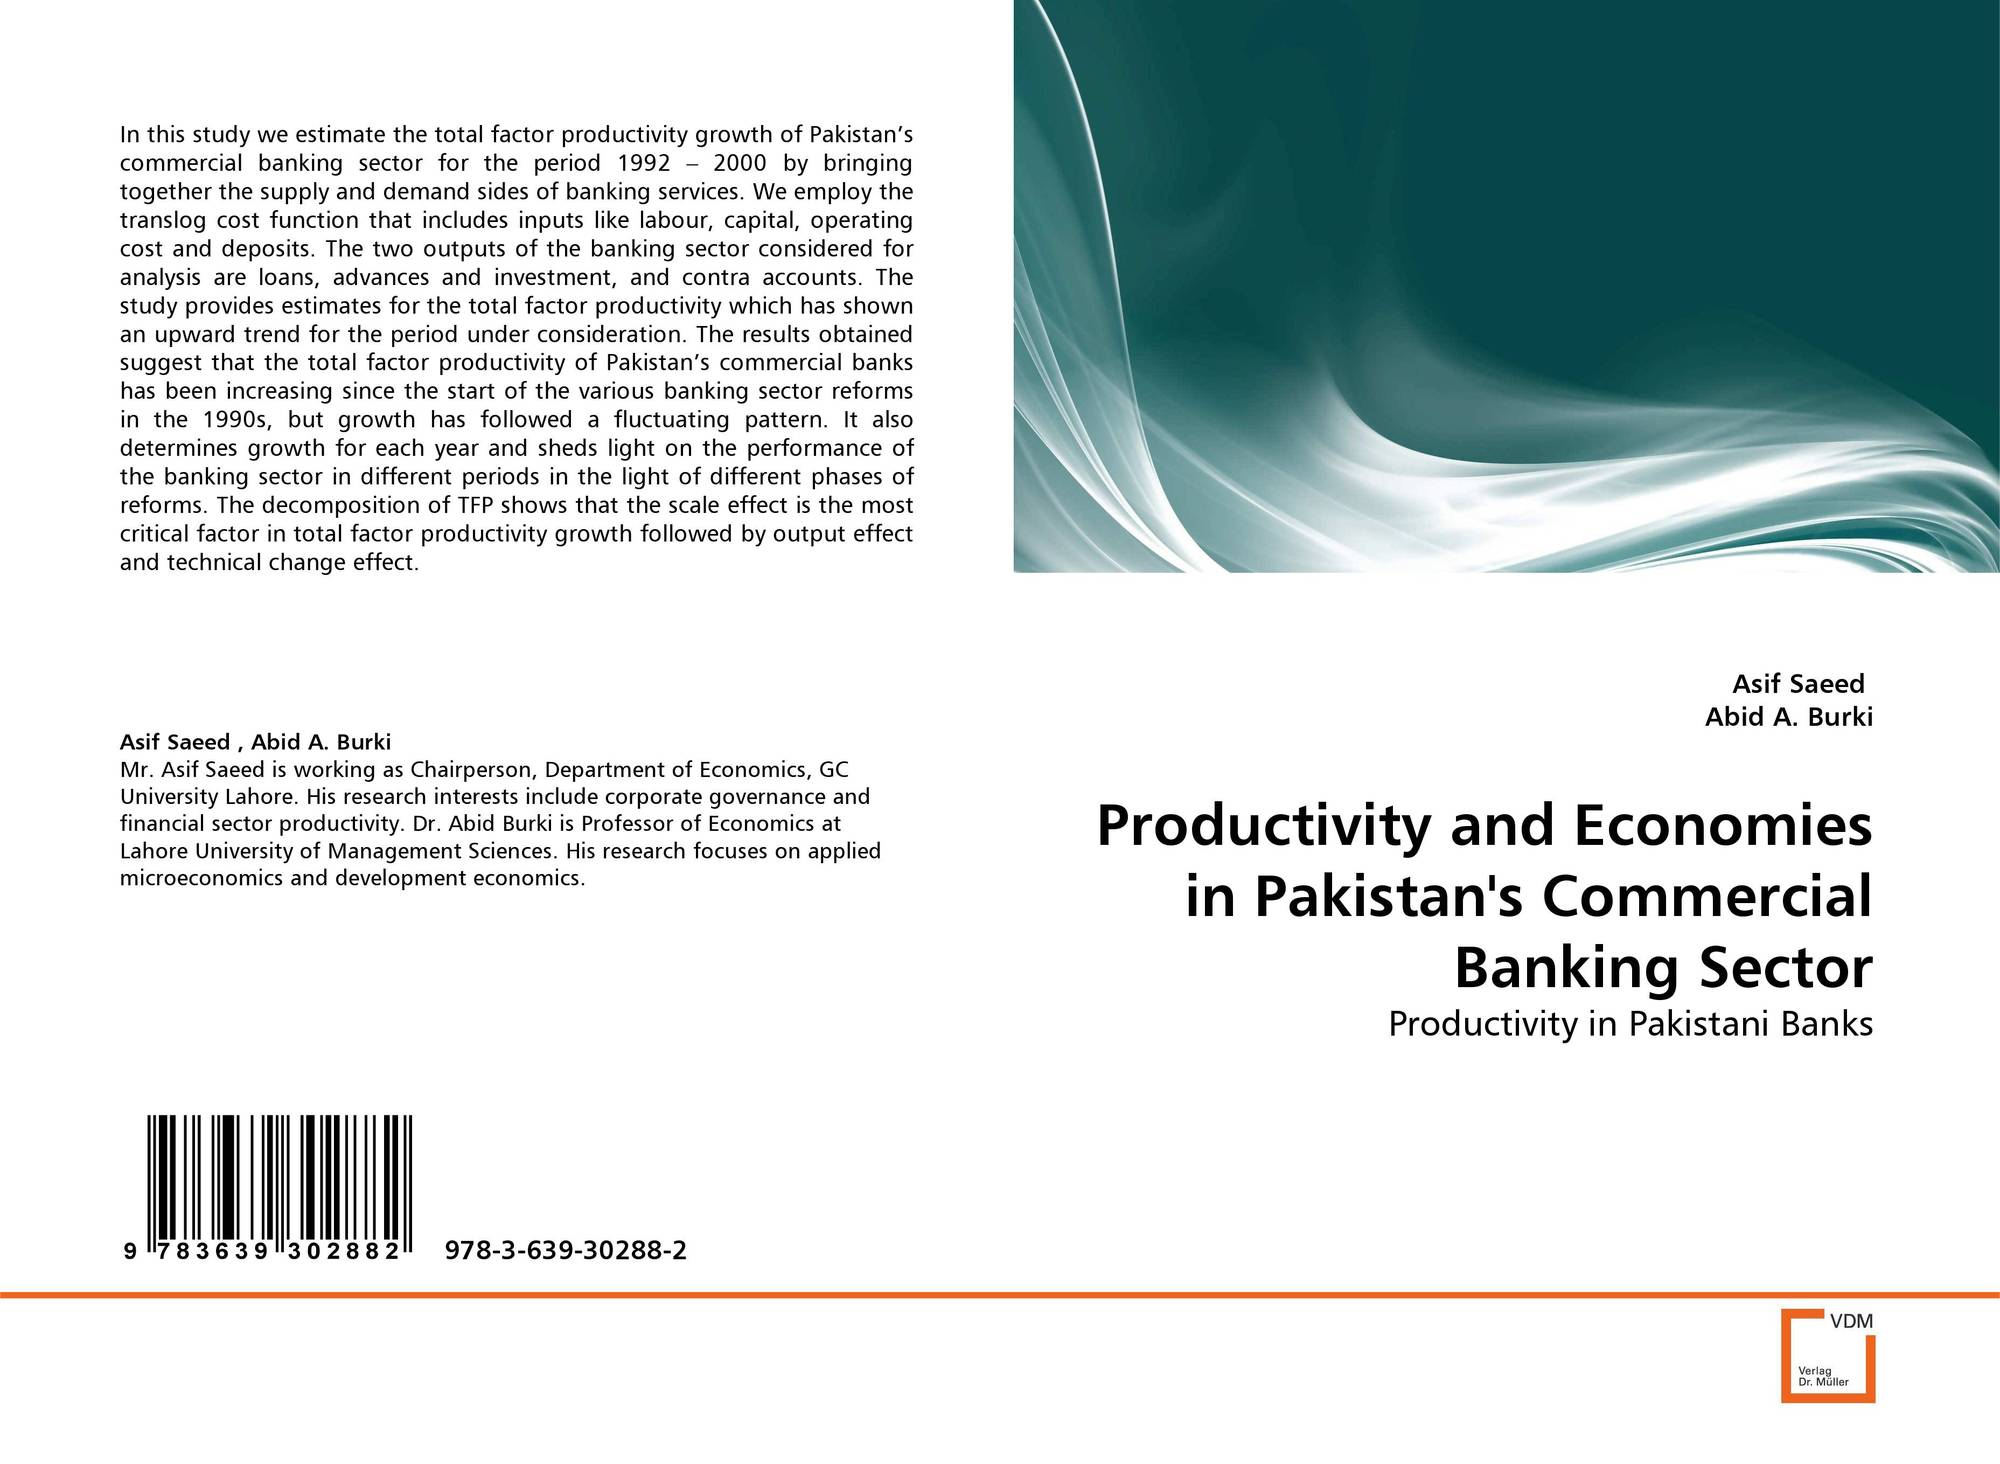 Productivity and Economies in Pakistan's Commercial Banking